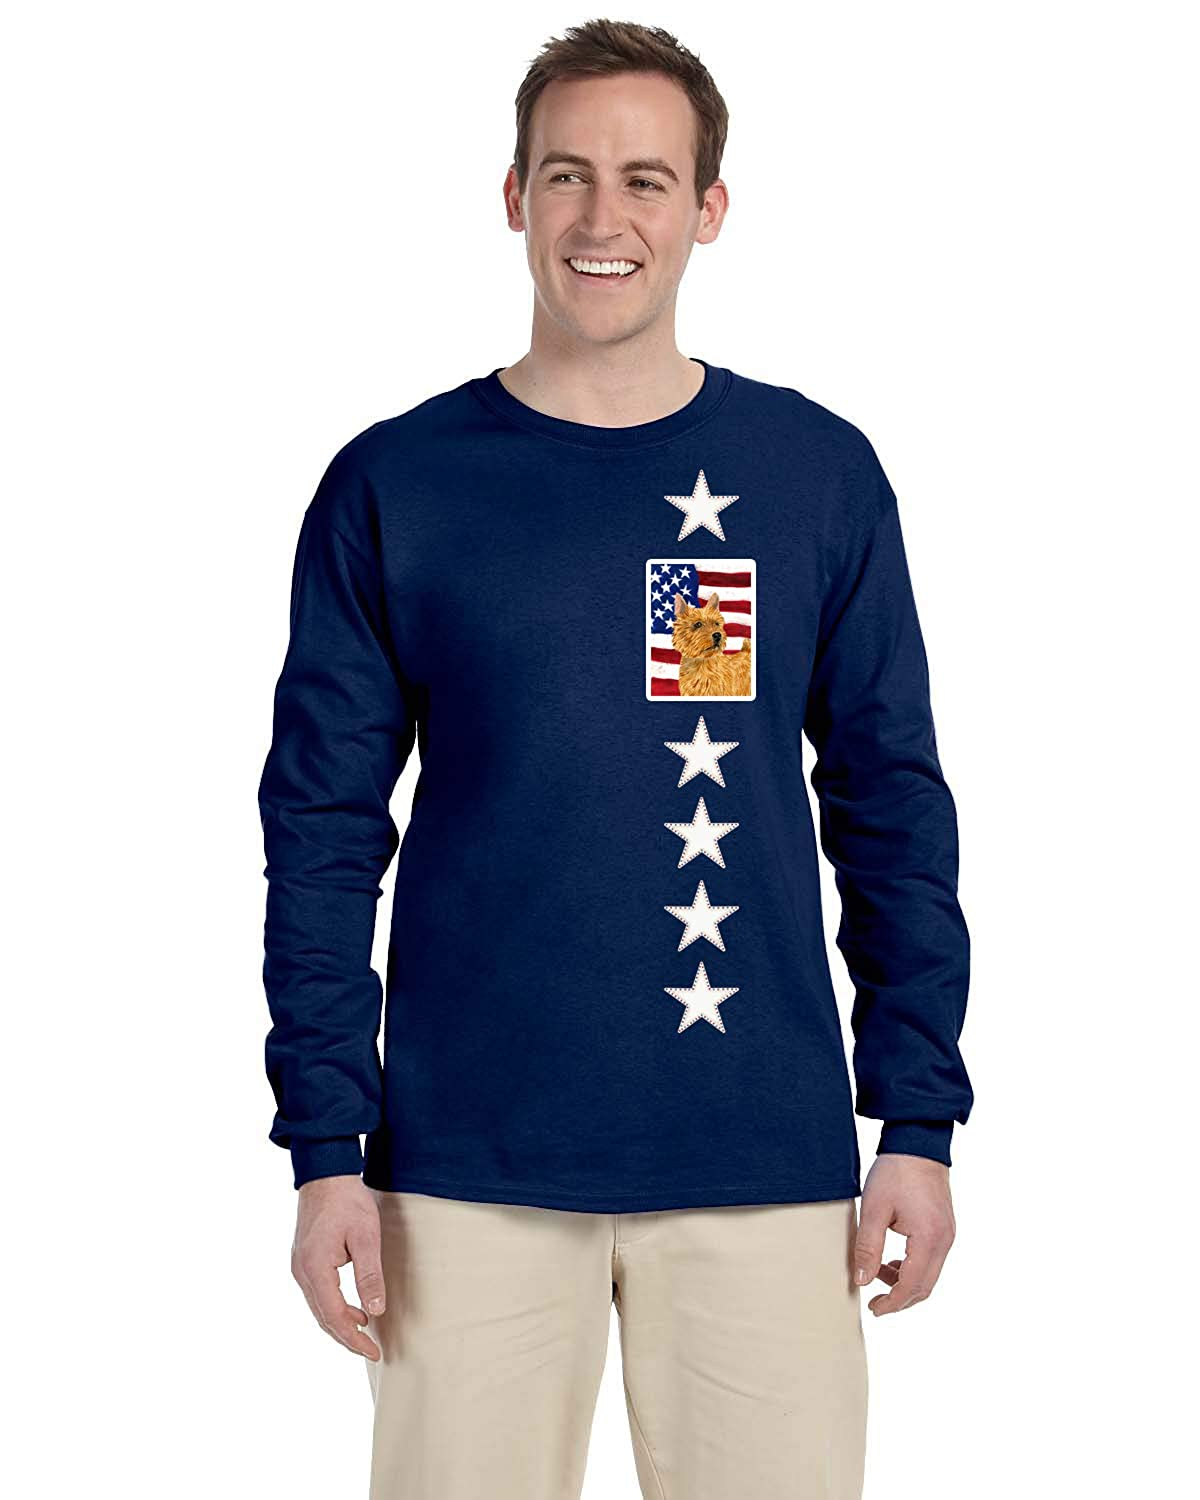 Multicolor L Carolines Treasures SS4026-LS-NAVY-L USA American Flag with Norwich Terrier Long Sleeve Blue Unisex Tshirt Large